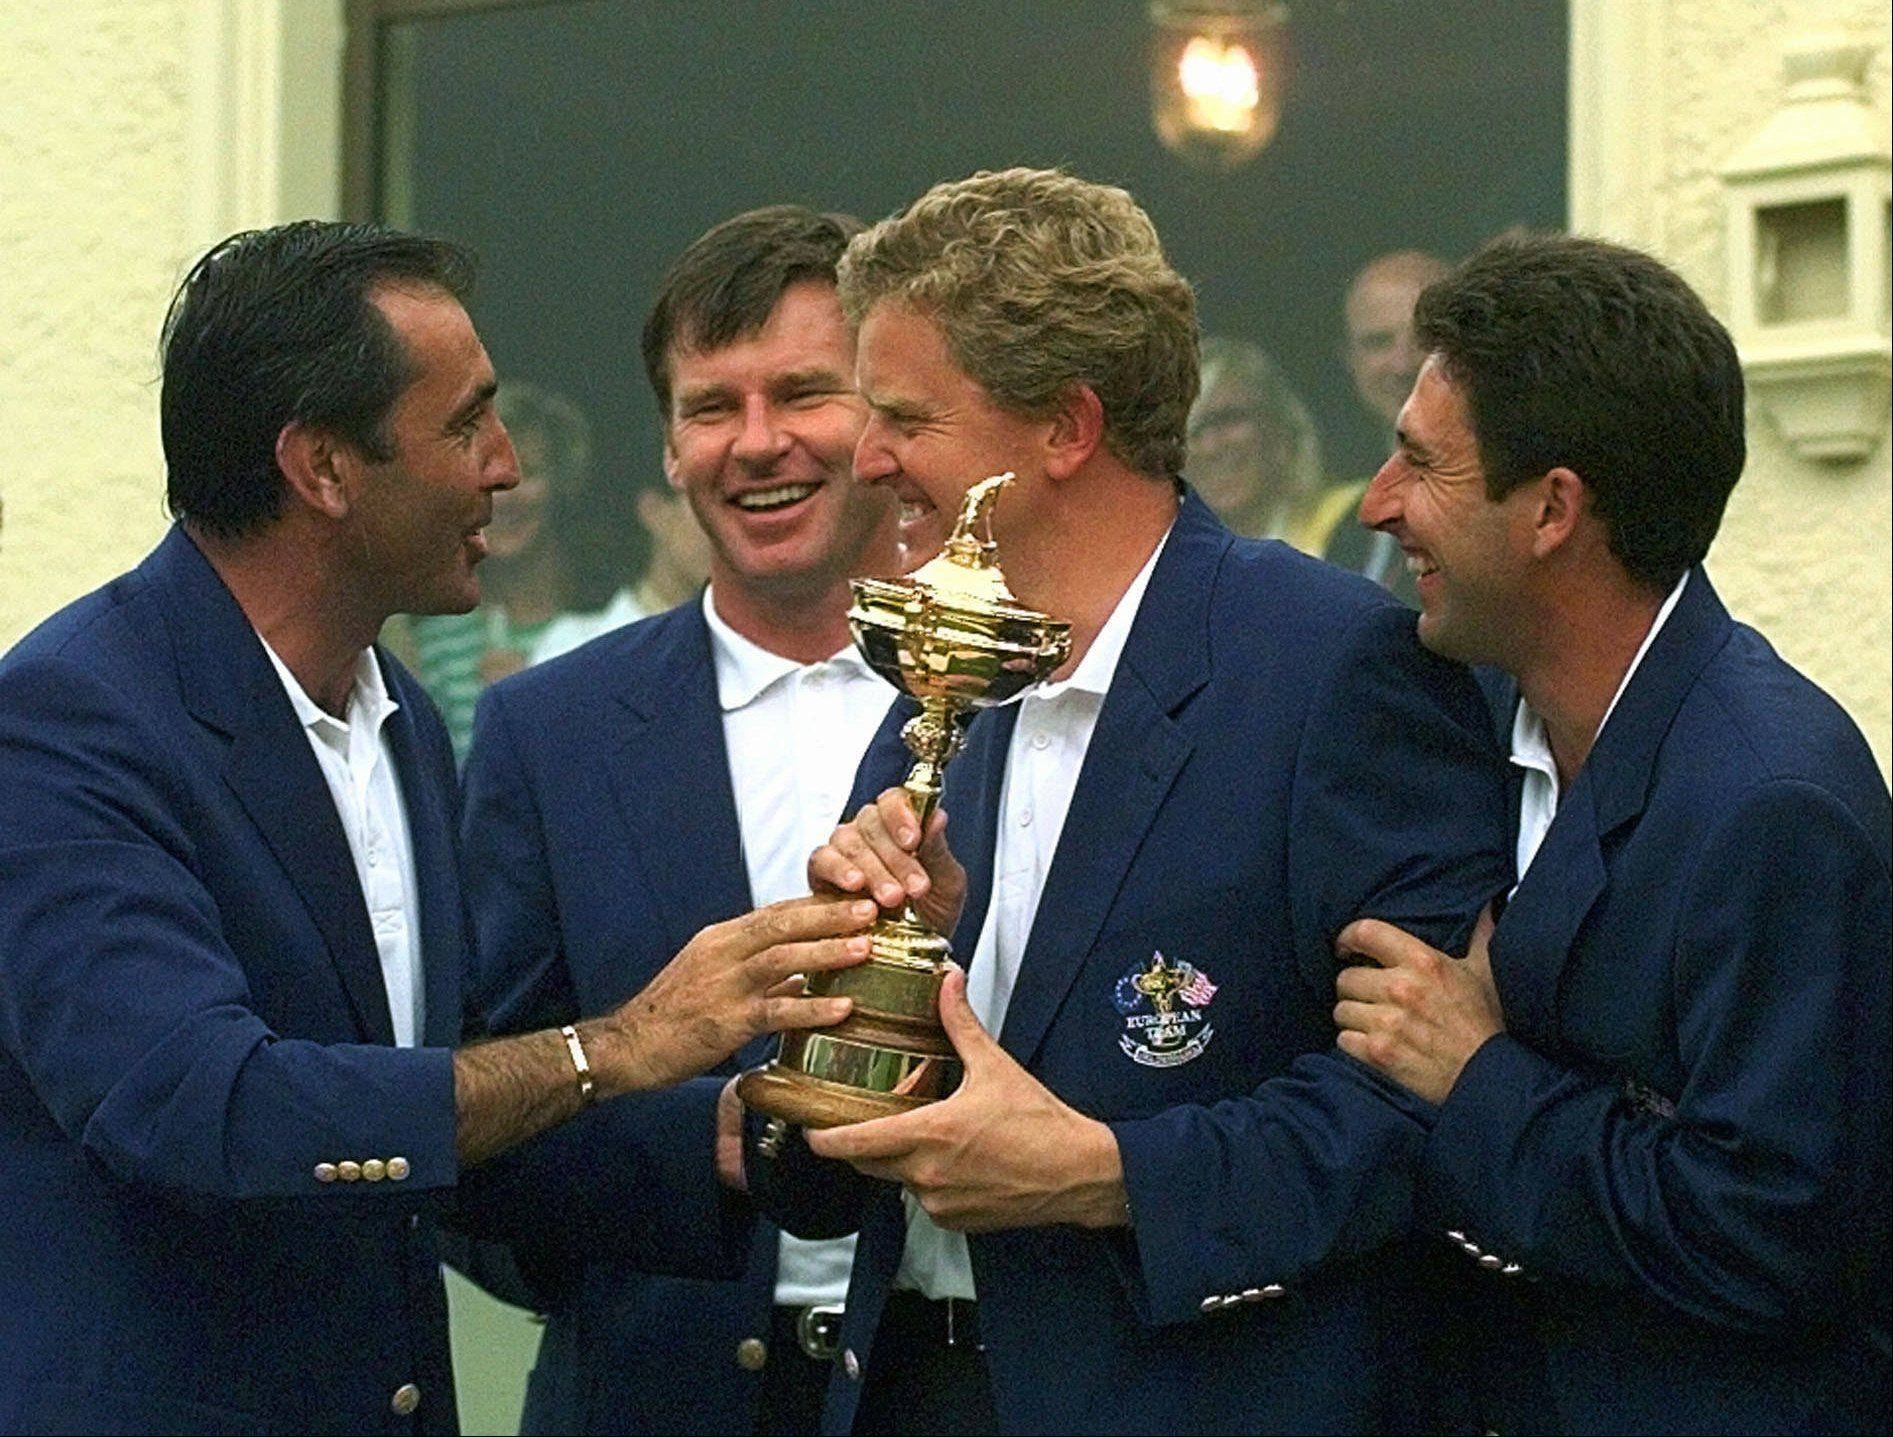 "European Ryder Cup team captain Severiano Ballesteros and players Nick Faldo of England, Colin Montgomerie of Scotland and Jose Maria Olazabal of Spain (left to right) hold the trophy after Europe beat the United States 14 1/2 to 13 1/2 to win the Ryder Cup at Valderrama golf course, southern Spain Sunday Sept. 28, 1997.The 1997 Cup is considered by many to be ""Seve's Ryder Cup"" on account of his impressive play."